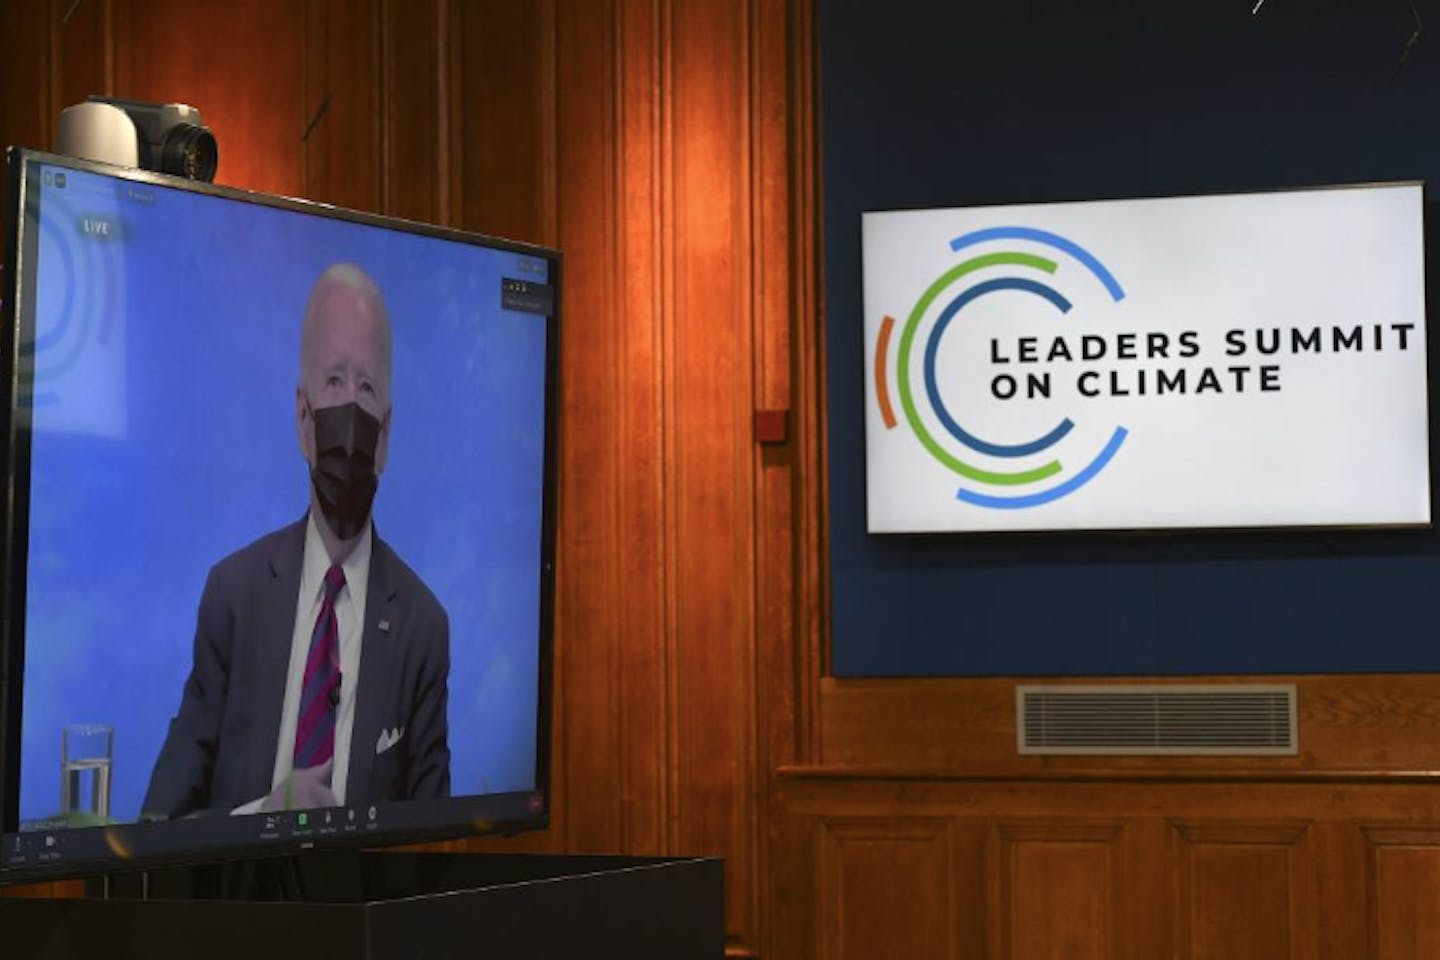 US President Joe Biden on the screen for Leaders Summit on Climate